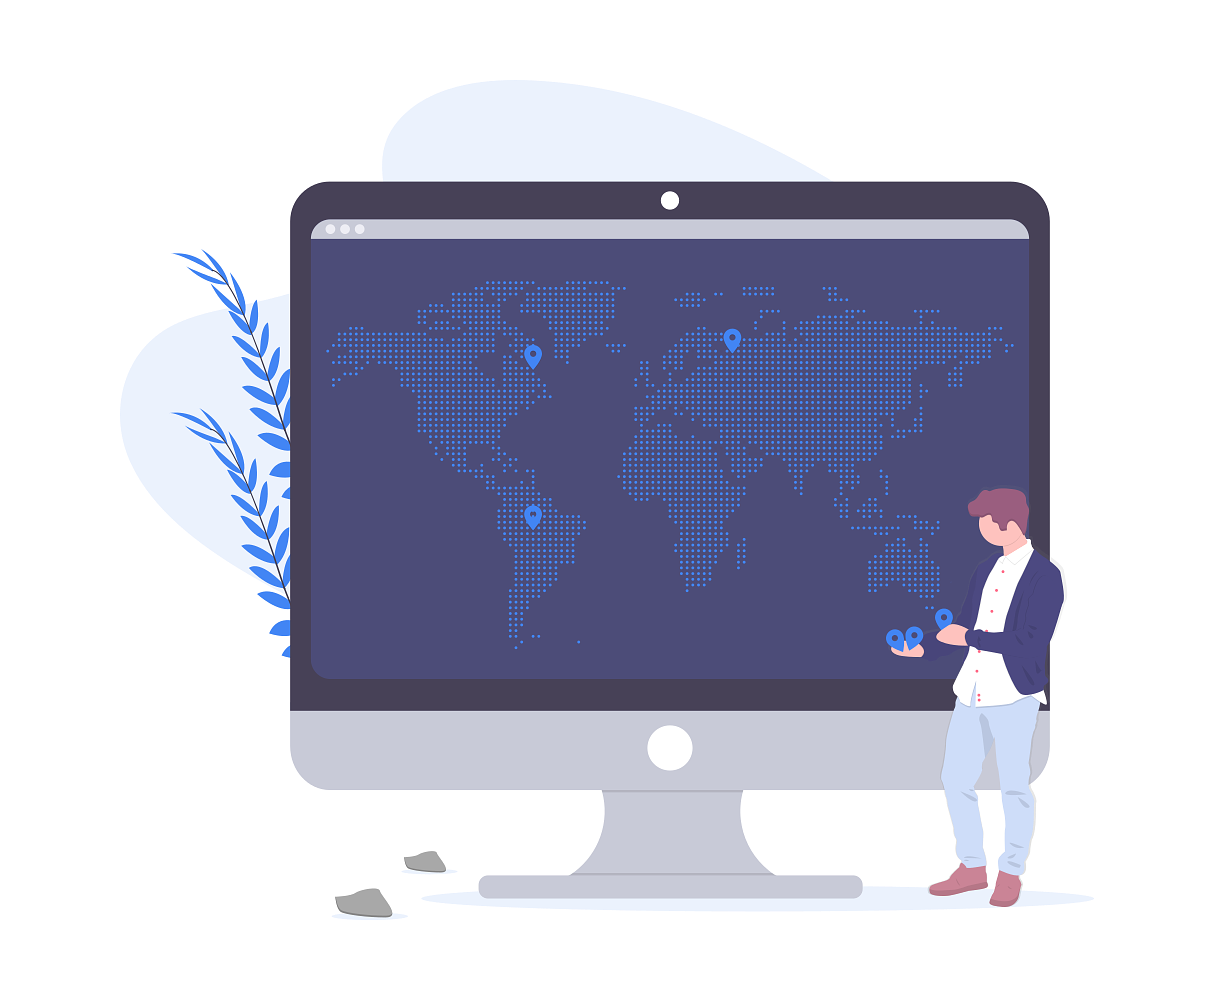 Stay connected with the right international conference call features for large businesses.